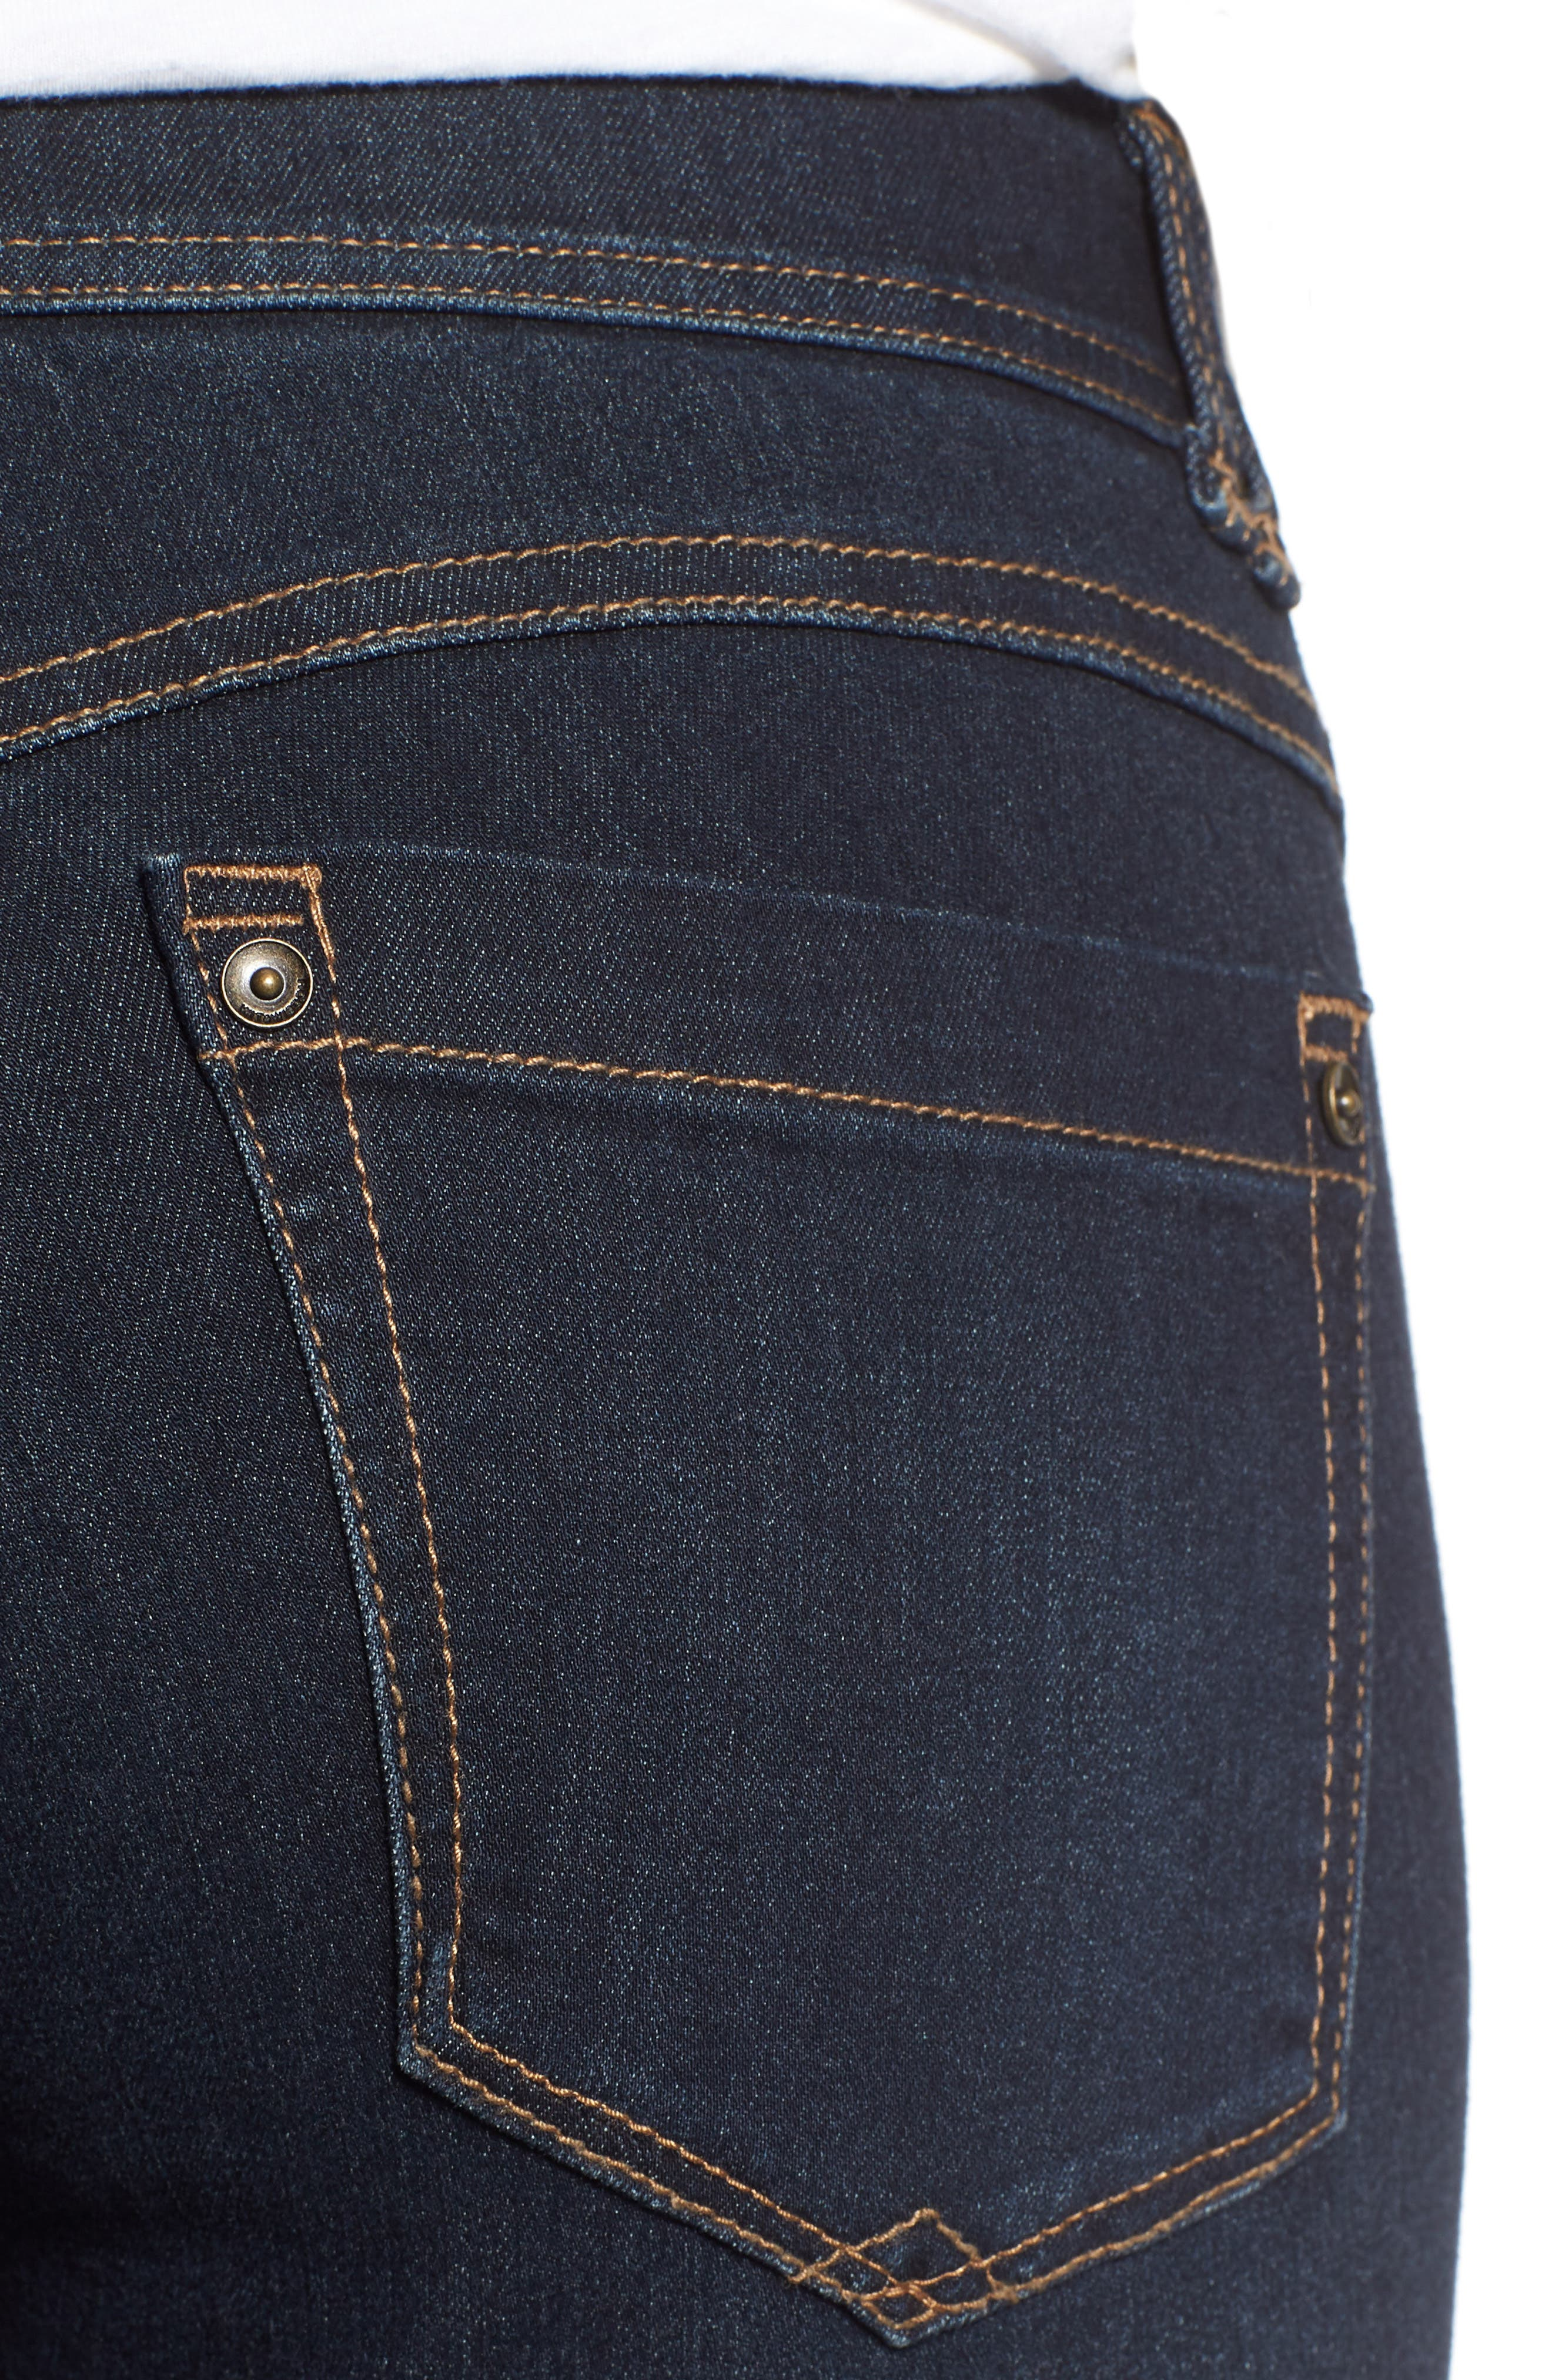 Ab-solution Itty Bitty Bootcut Jeans,                             Alternate thumbnail 4, color,                             IN-INDIGO